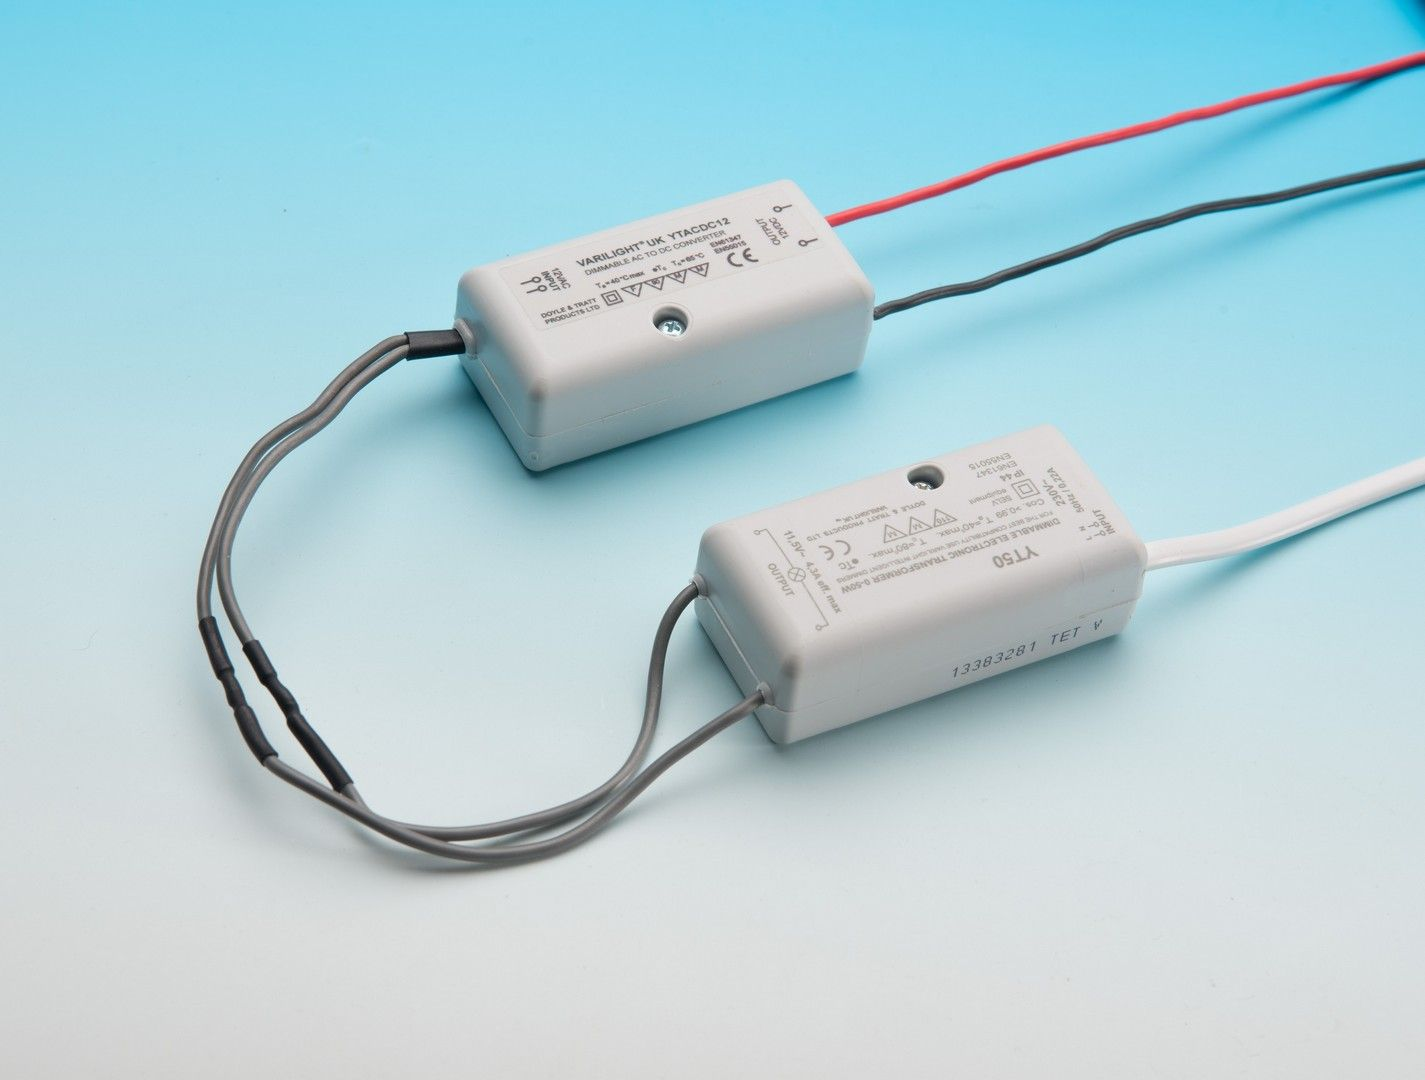 hight resolution of varilight 240v ac to 12v dc dimmable converter for led strip max 45w yt45dc12